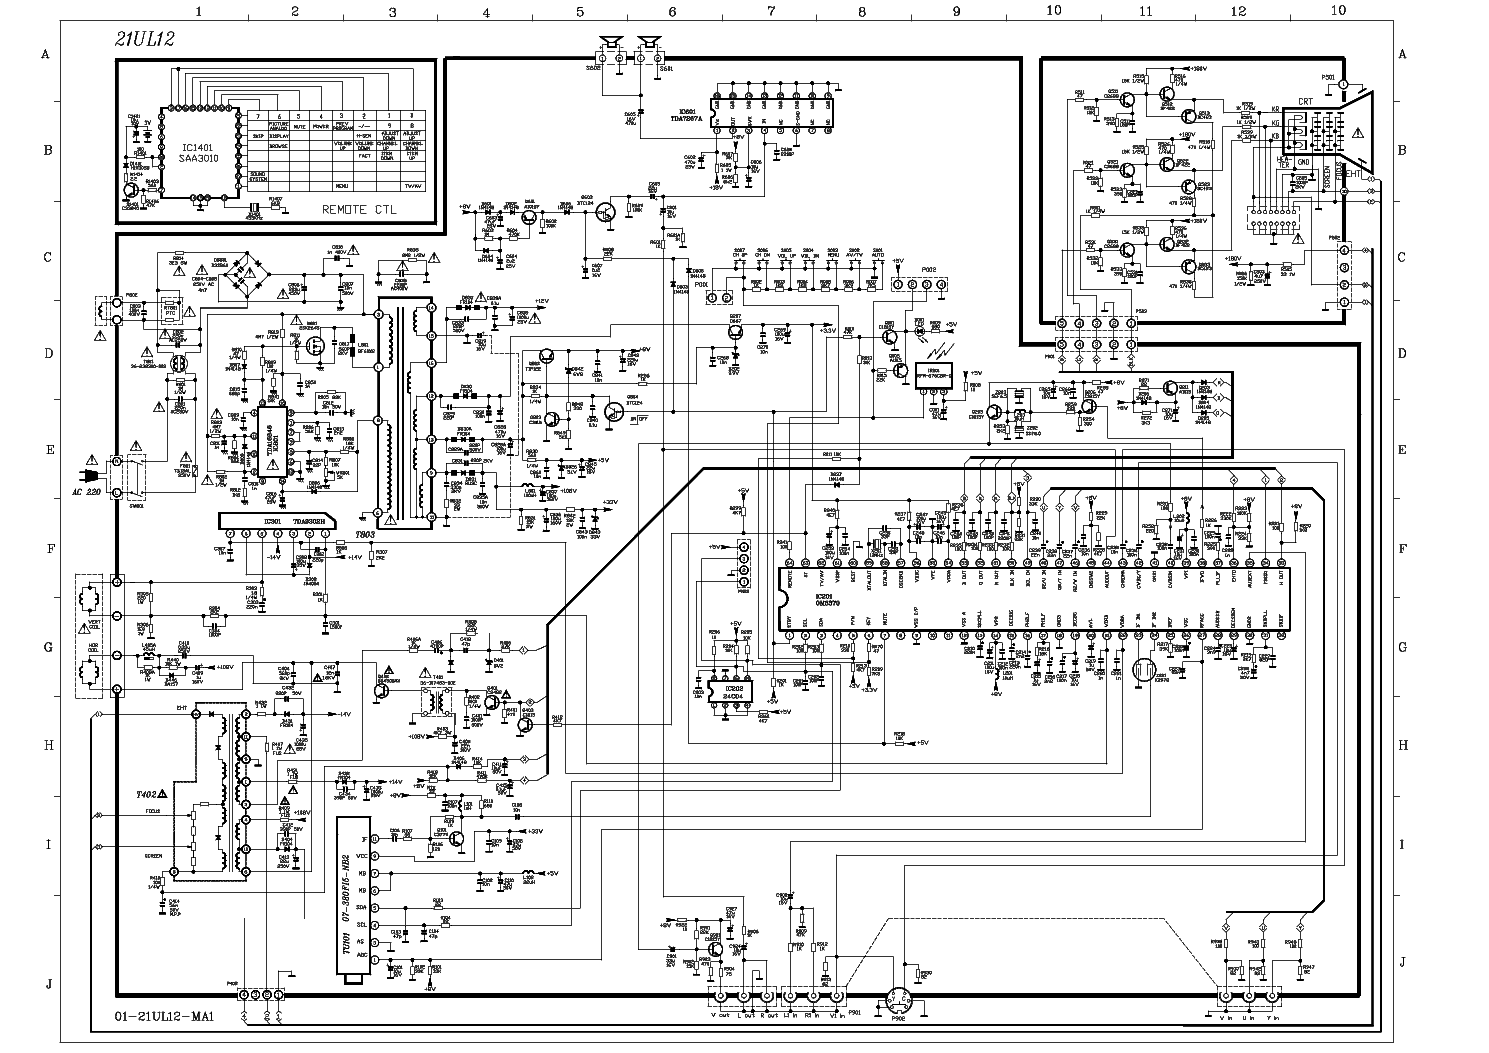 Tcl At21276 Ch 21ul12 Sch Service Manual Download  Schematics  Eeprom  Repair Info For